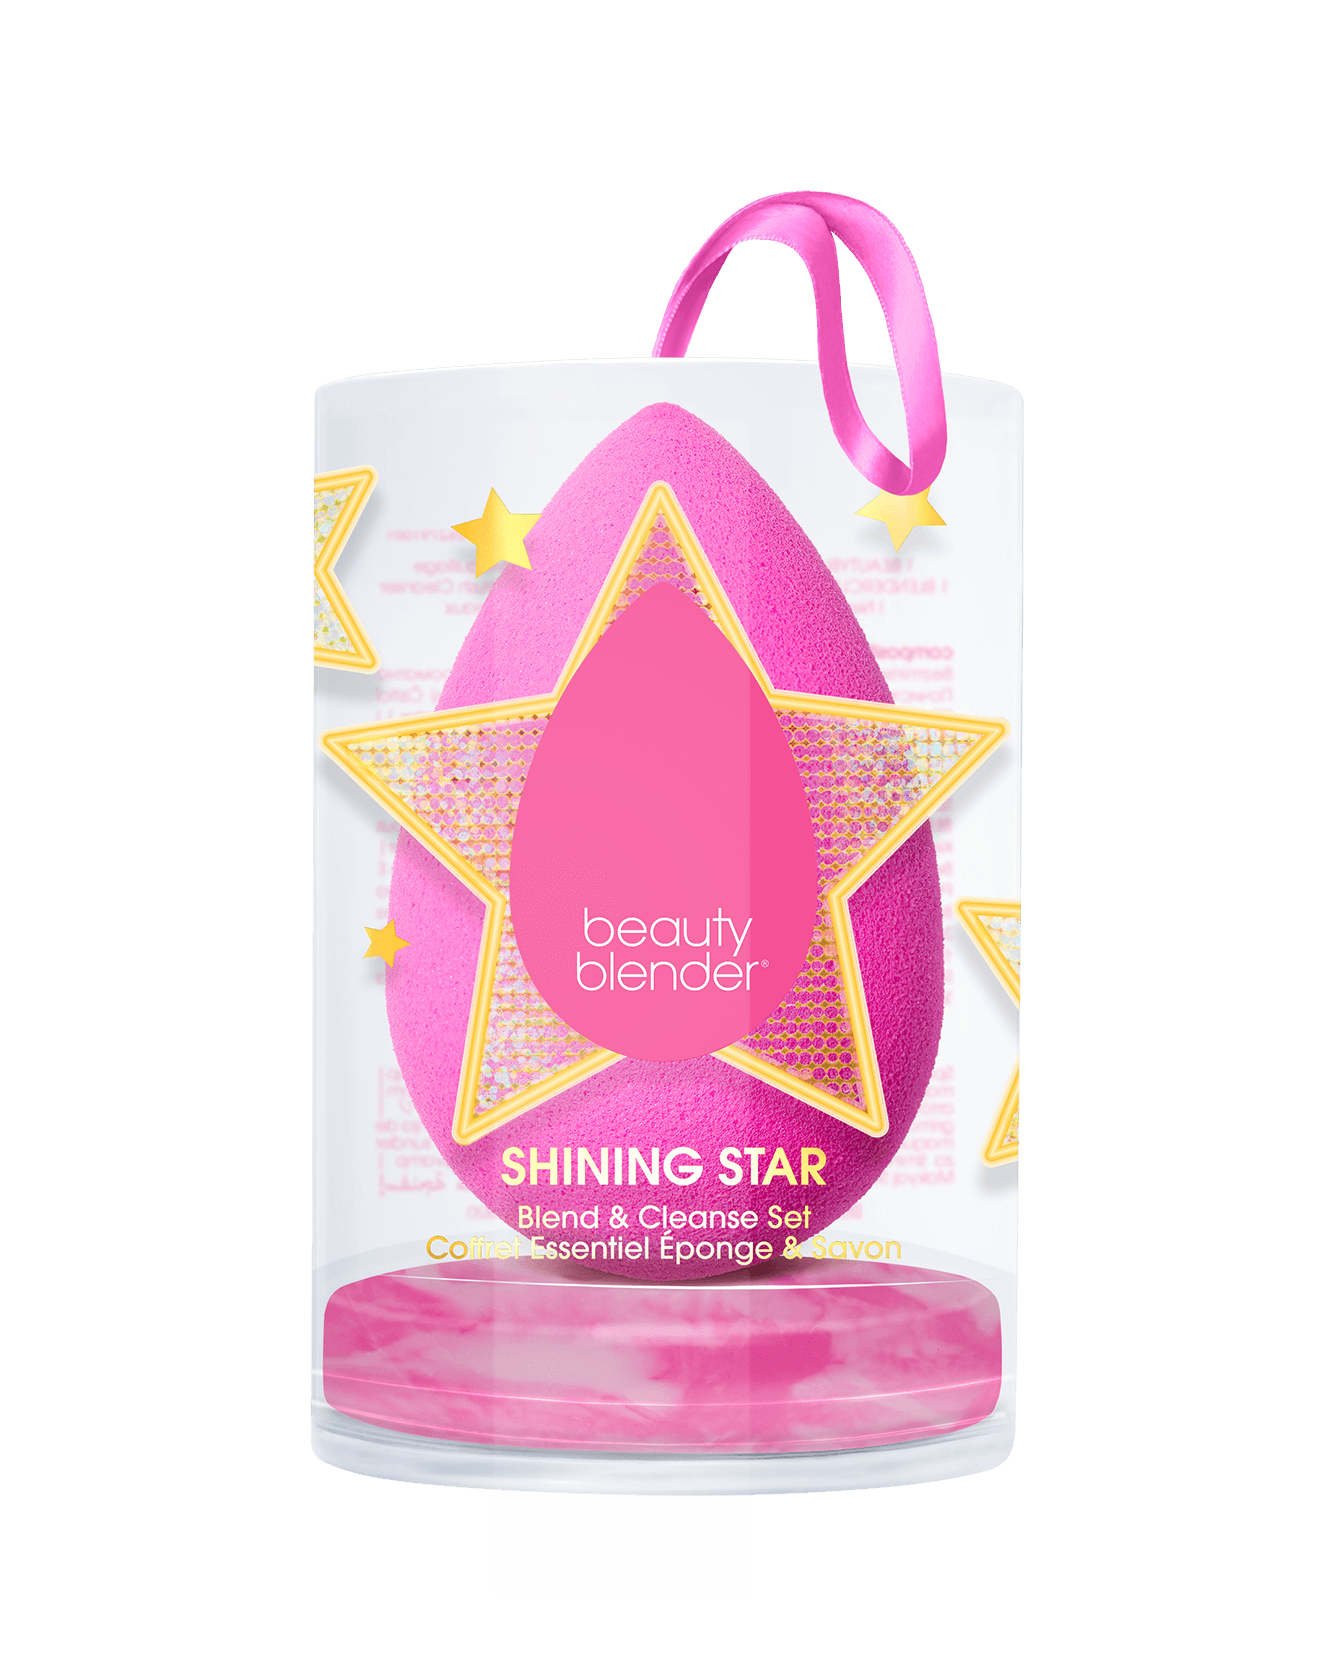 SHINING STAR Blend & Cleanse Set. Limited edition blend and cleanse makeup sponge set.